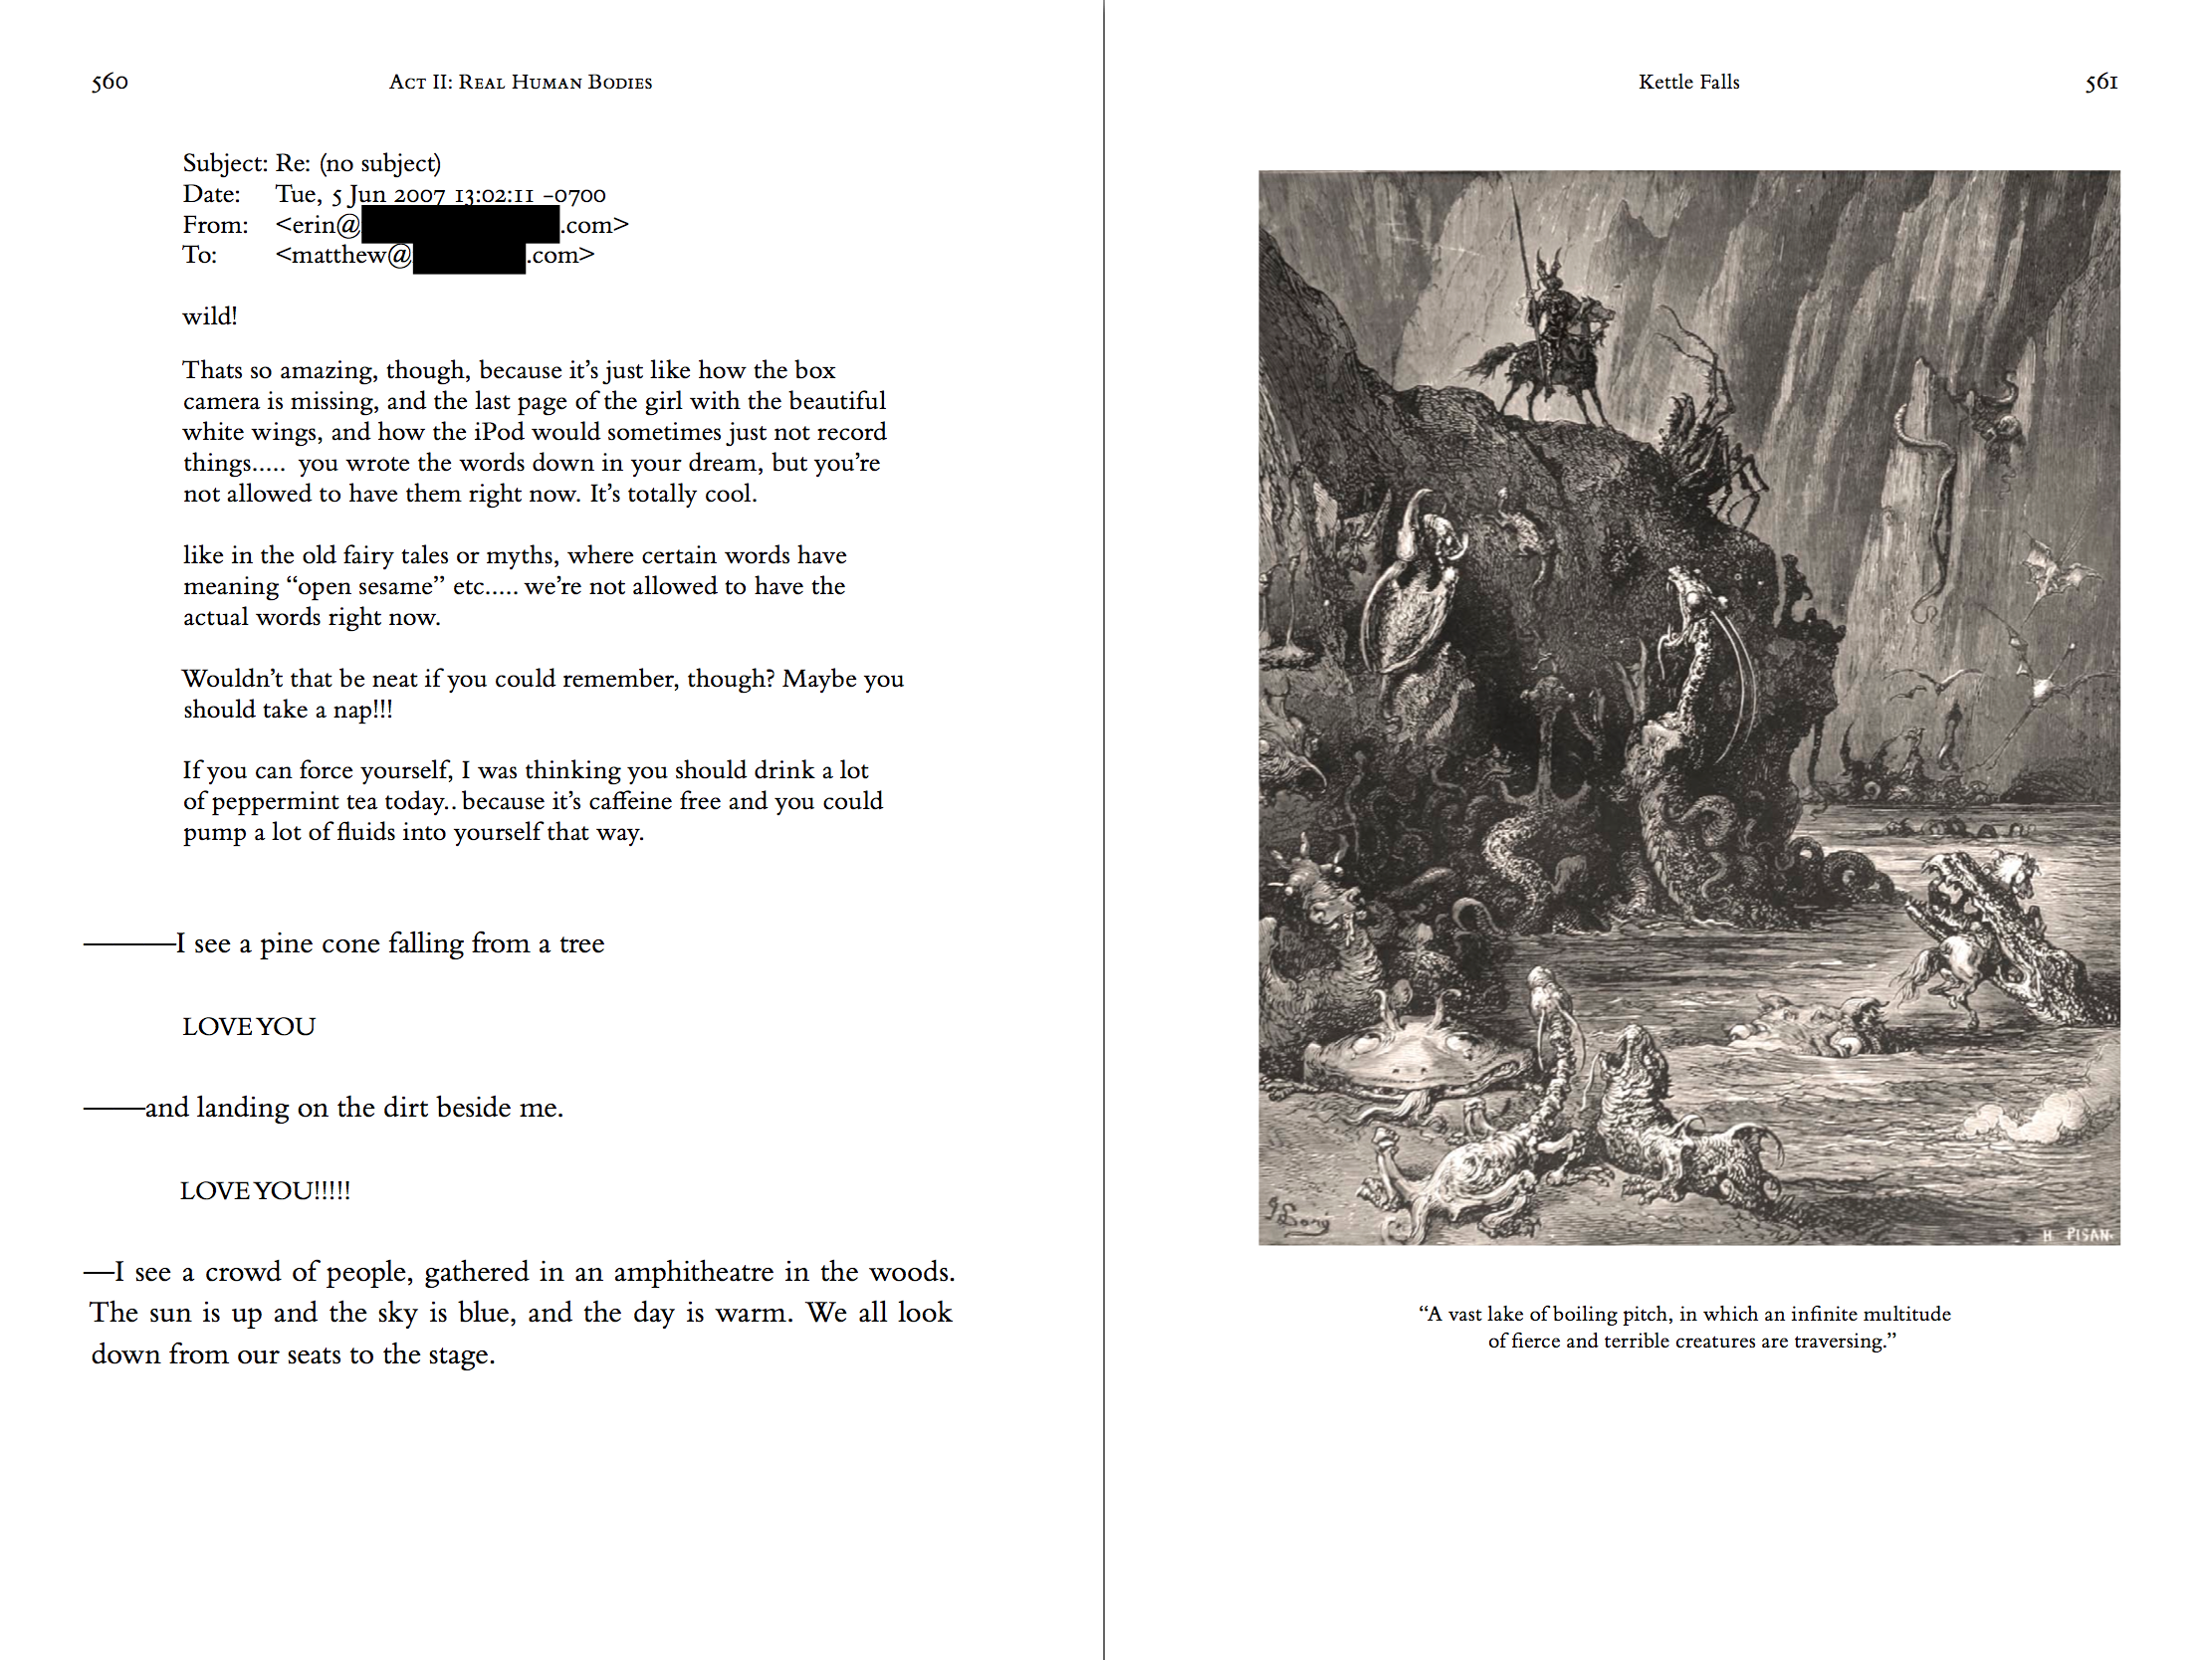 Two-page spread of the hardcover, printed version of the novel theMystery.doc by Matthew McIntosh. Verso: Paragraphs of text. Recto: Gustav Dore engraving from Don Quixote. The knight overlooks a vast lake of boiling pitch.